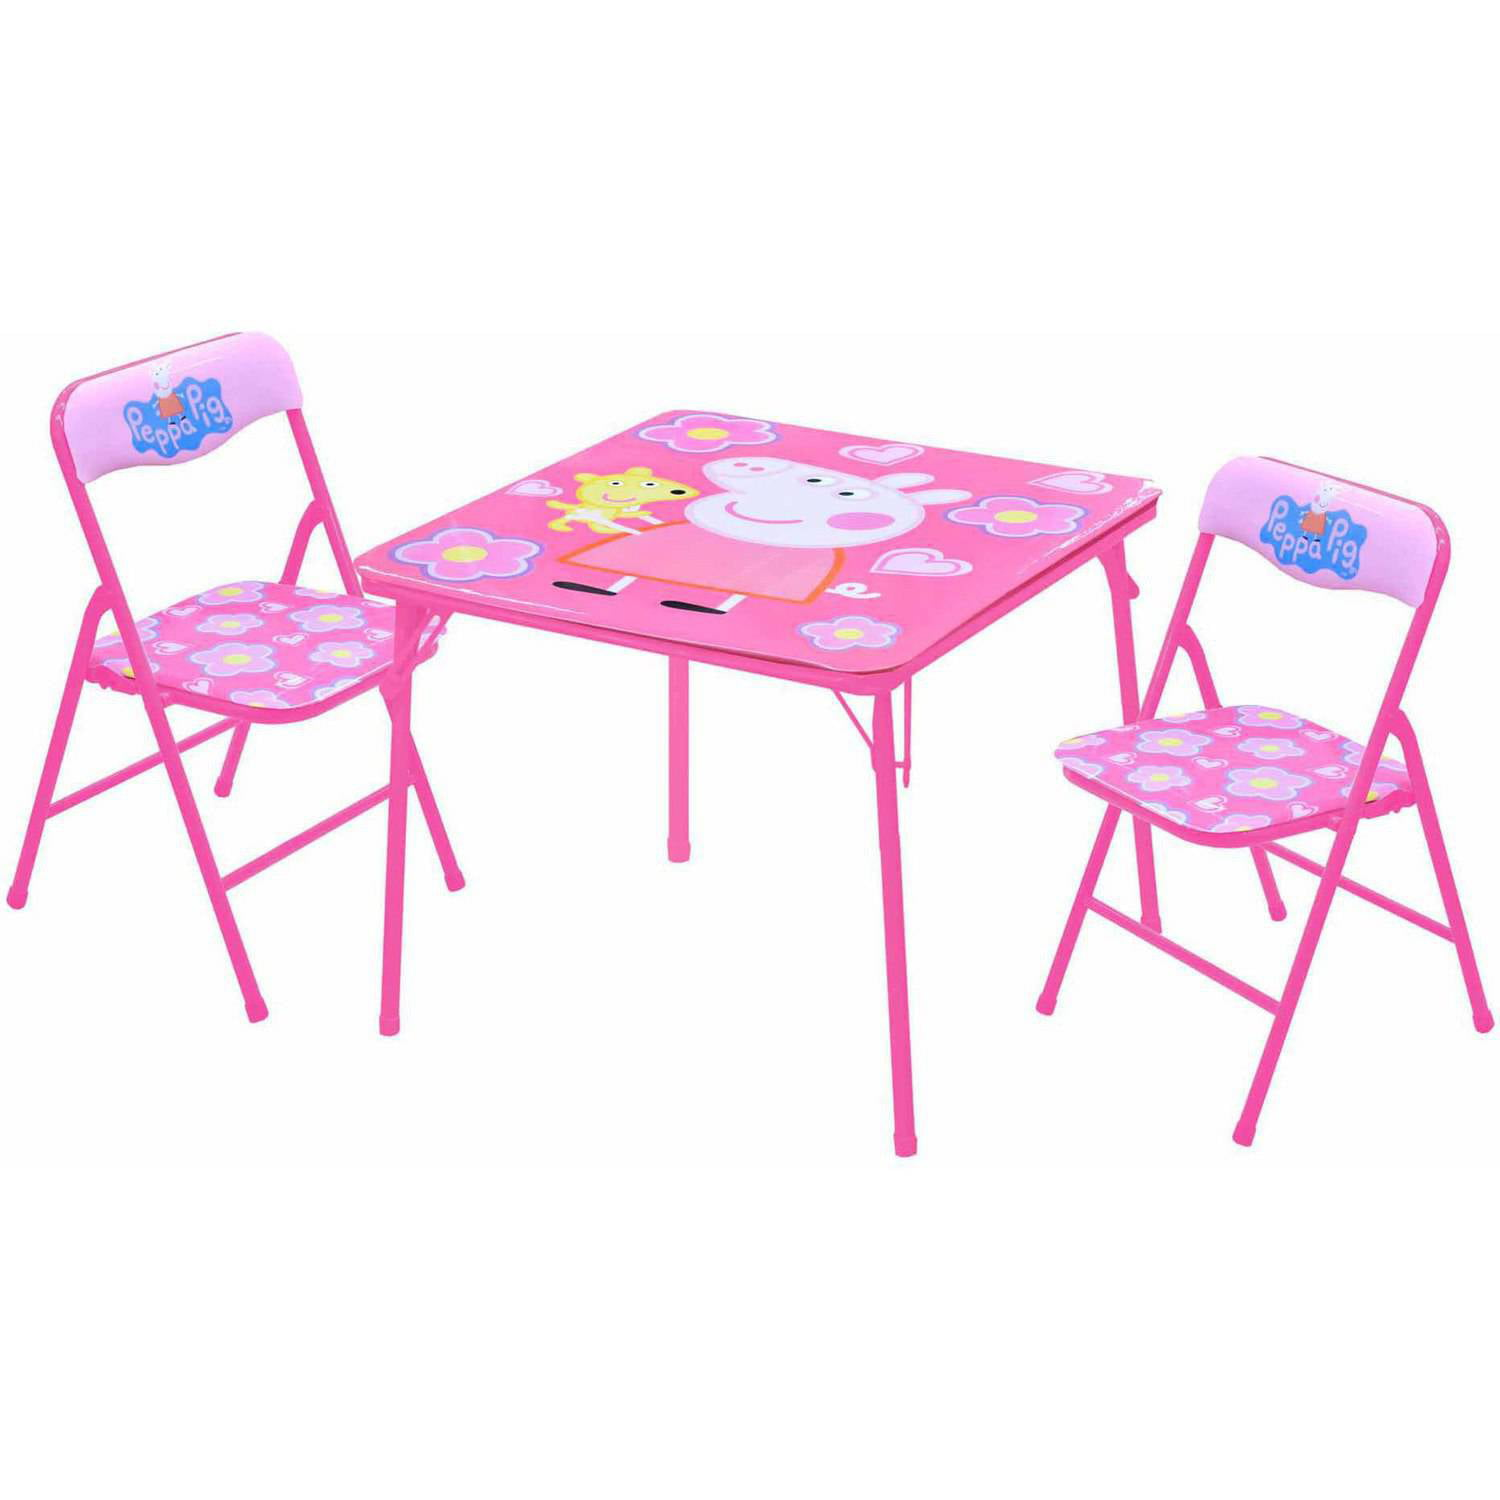 Excellent Peppa Pig Table And Chairs Set Walmart Com Unemploymentrelief Wooden Chair Designs For Living Room Unemploymentrelieforg